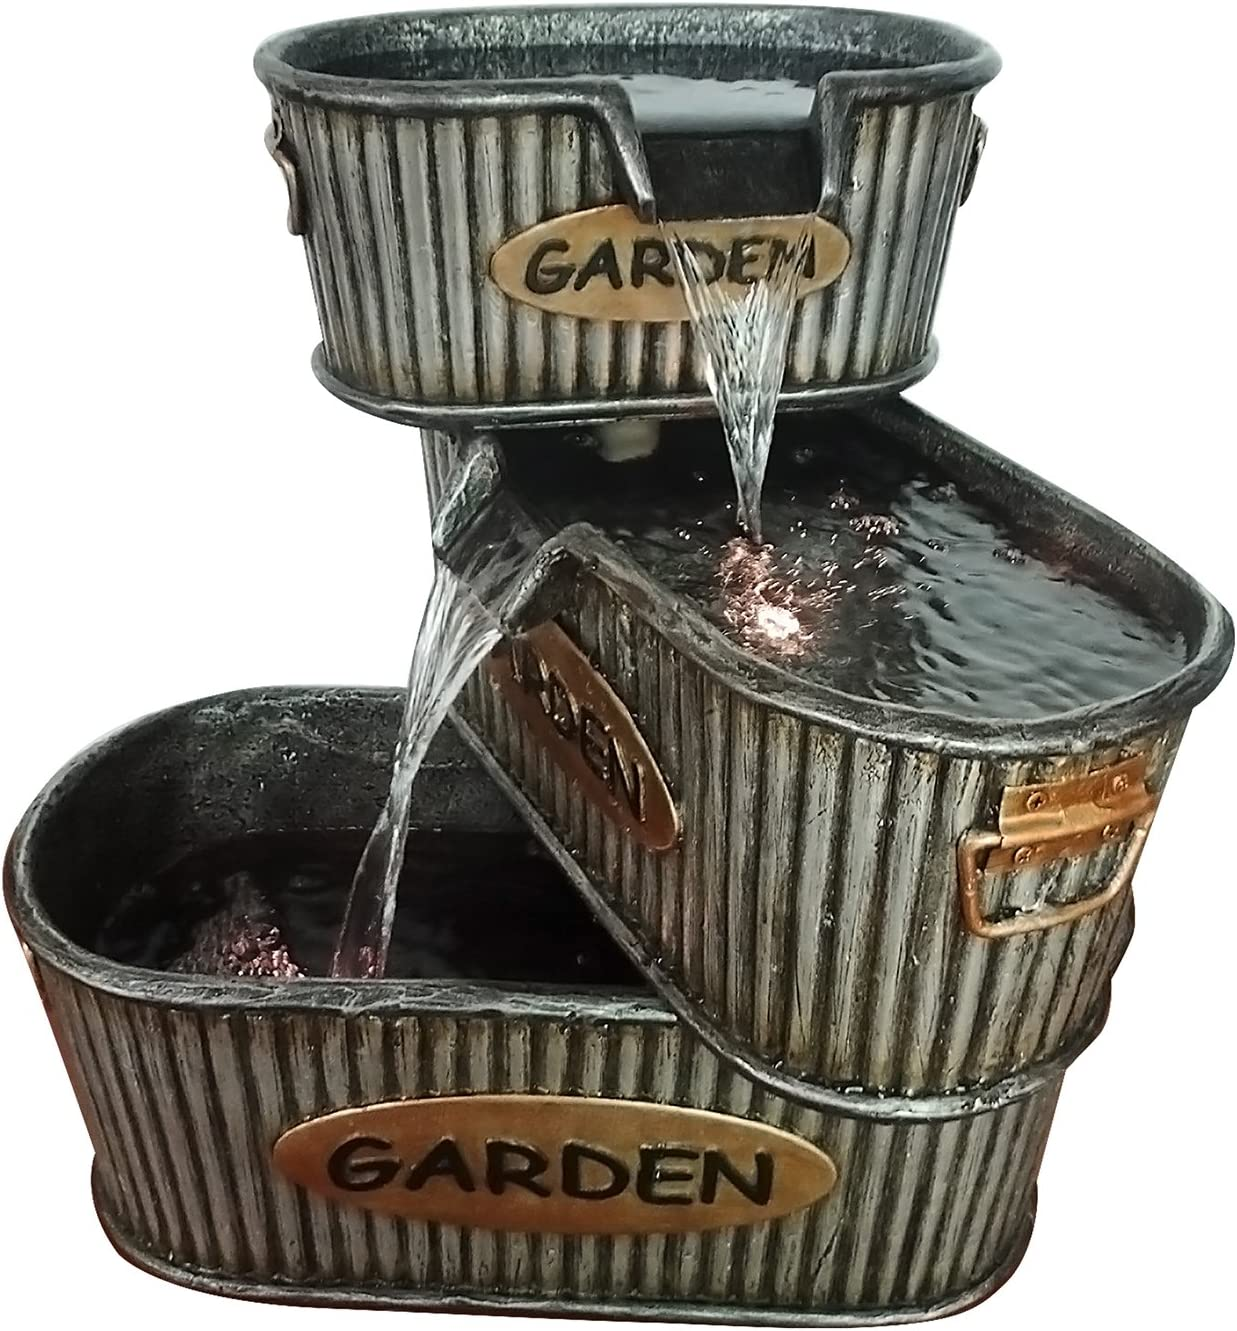 Alpine Corporation 3-Tier Garden Tin Fountain - Old-Fashioned Outdoor Waterfall for Patio, Deck, Porch - Yard Art Decor